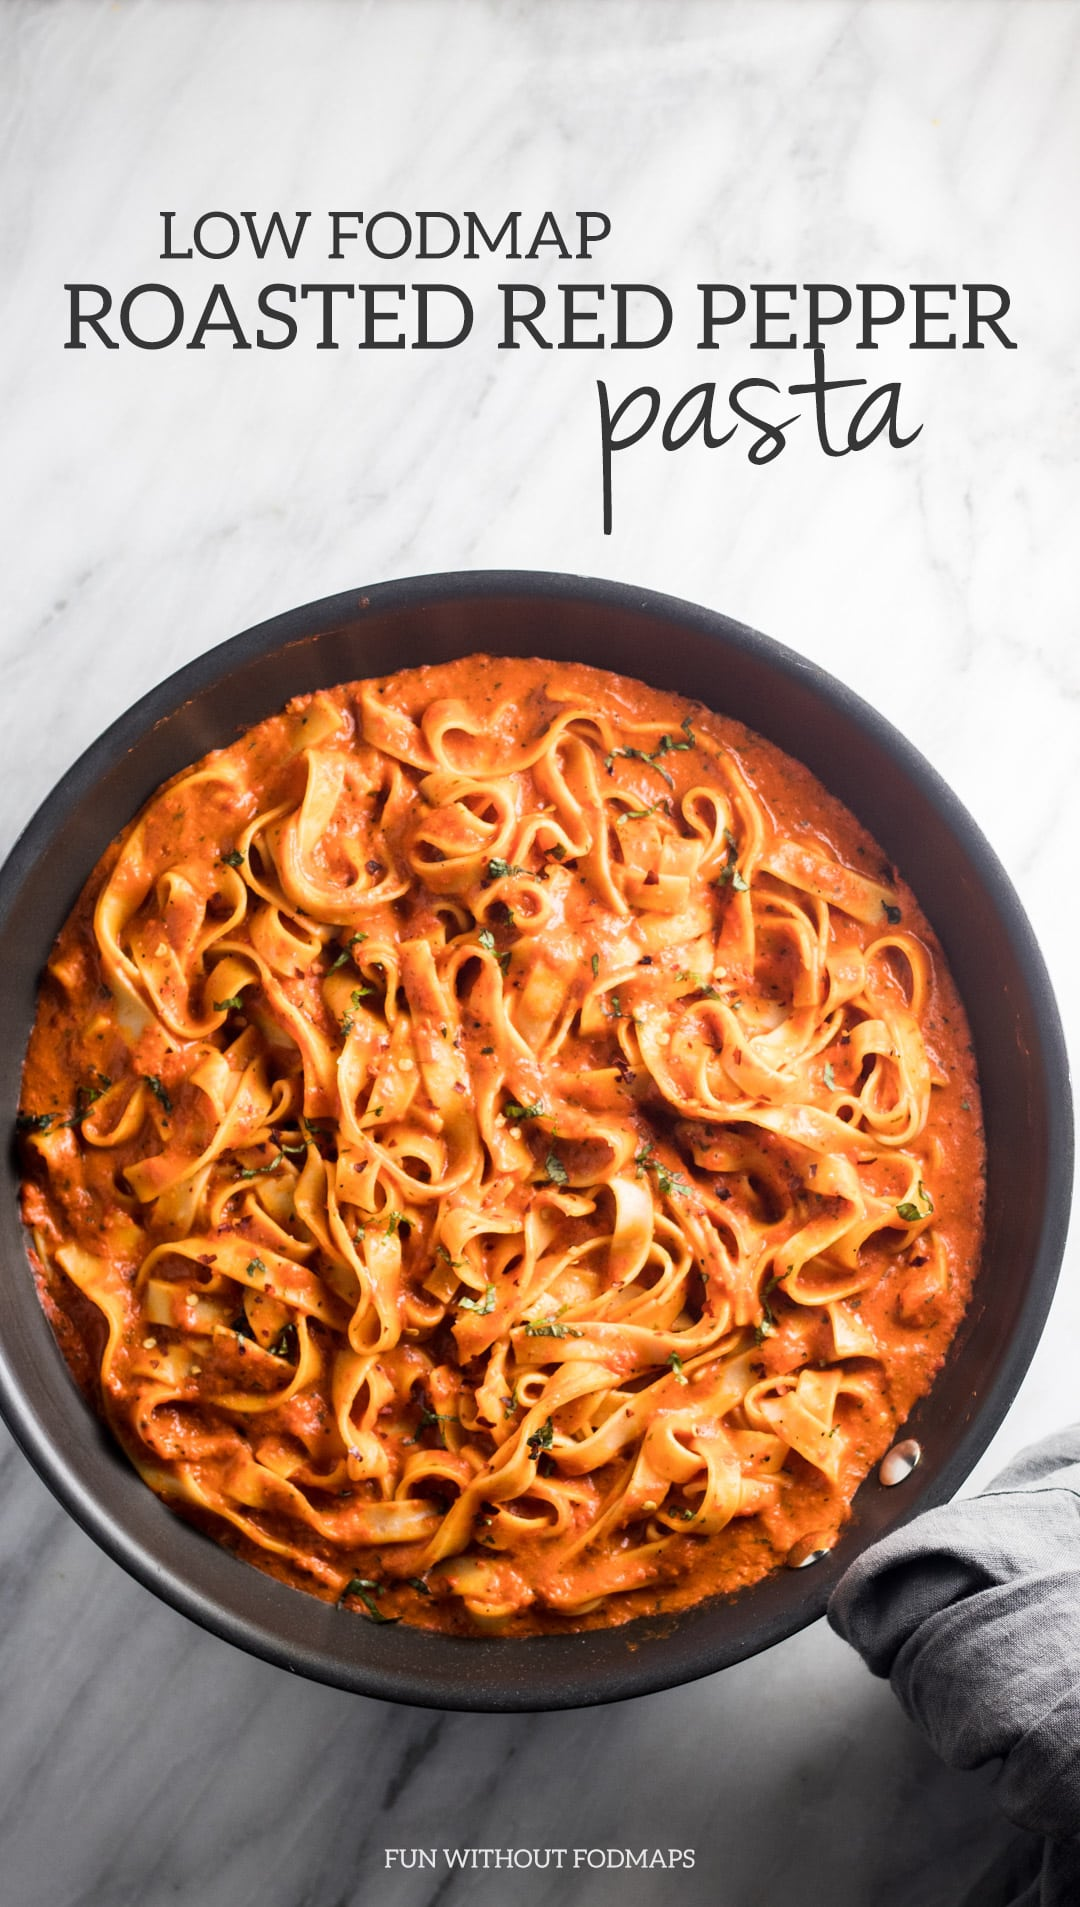 Looking down at a skillet filled with fettuccini tossed in a red pepper sauce. The skillet handle is wrapped in a gray linen napkin. Above the skillet a black text overlay reads Low FODMAP Roasted Red Pepper Pasta